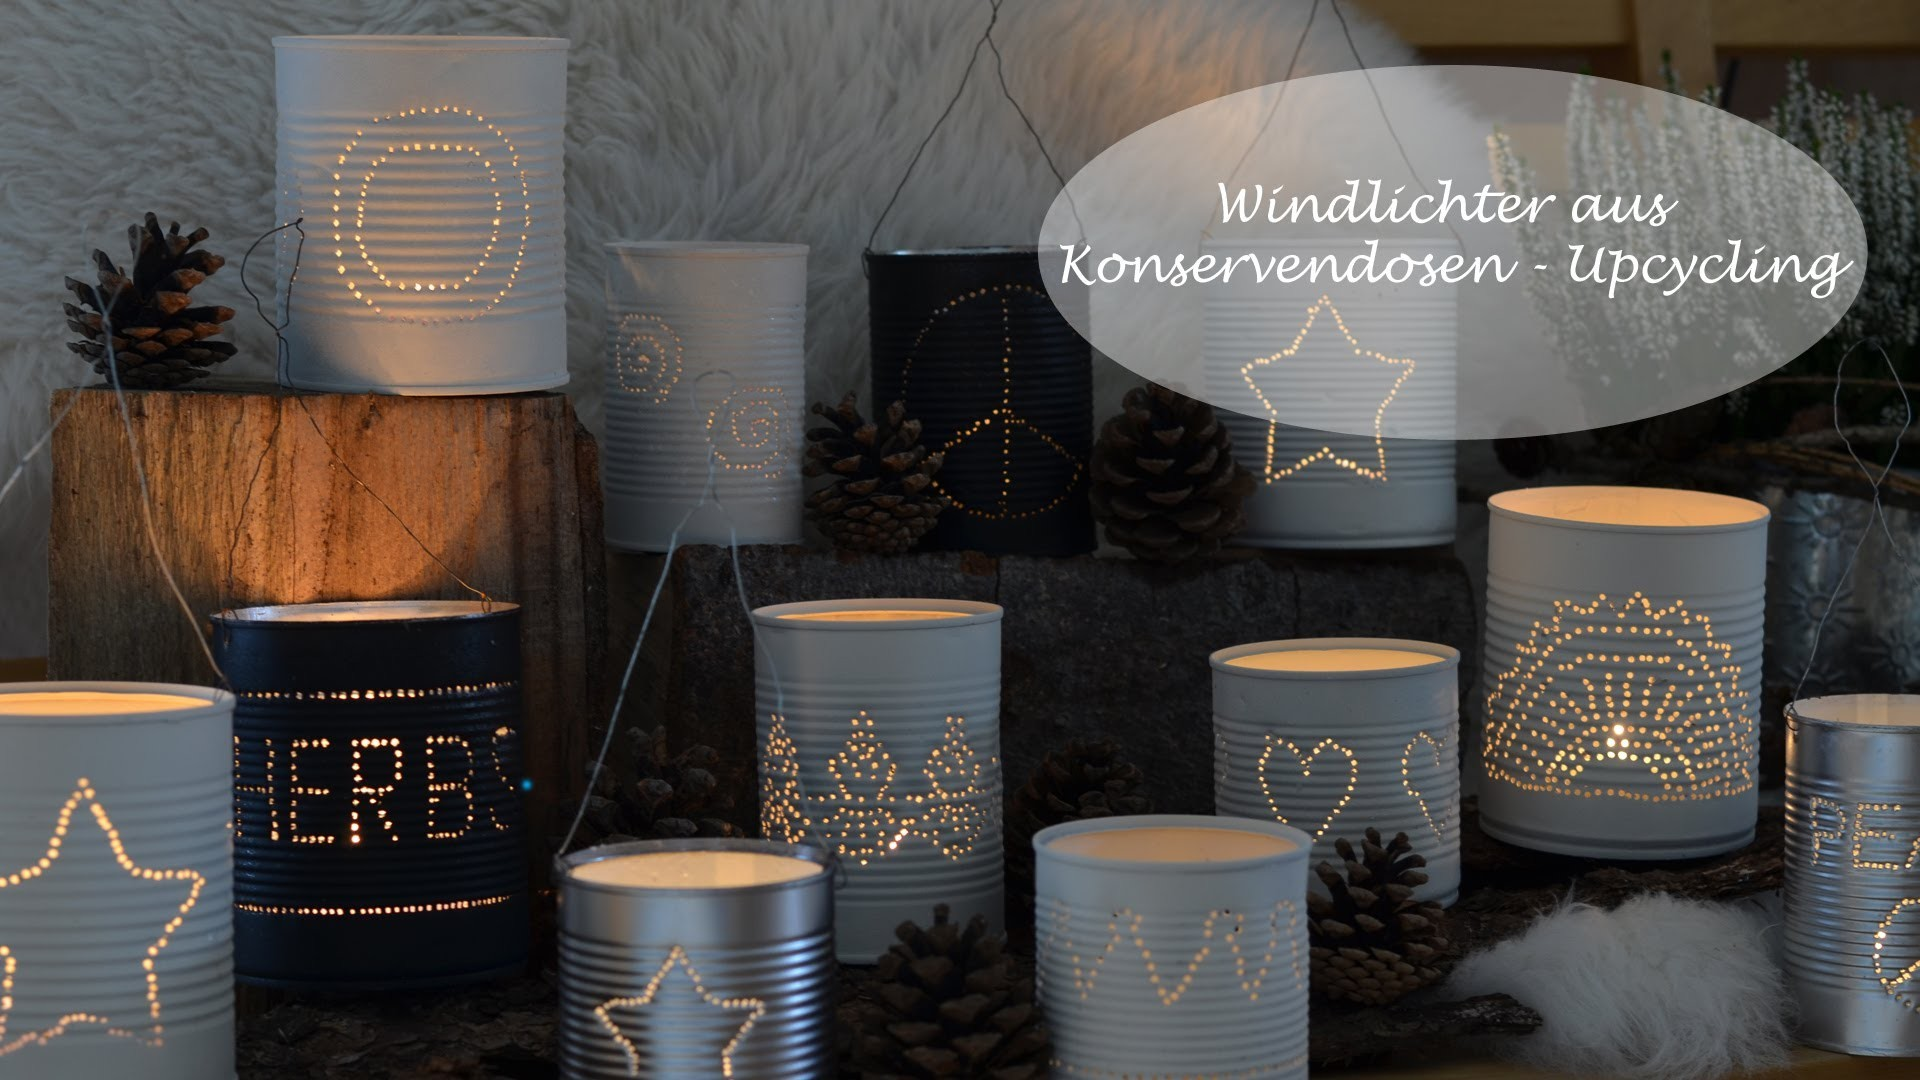 diy windlichter aus konservendosen ein upcycling projekt. Black Bedroom Furniture Sets. Home Design Ideas